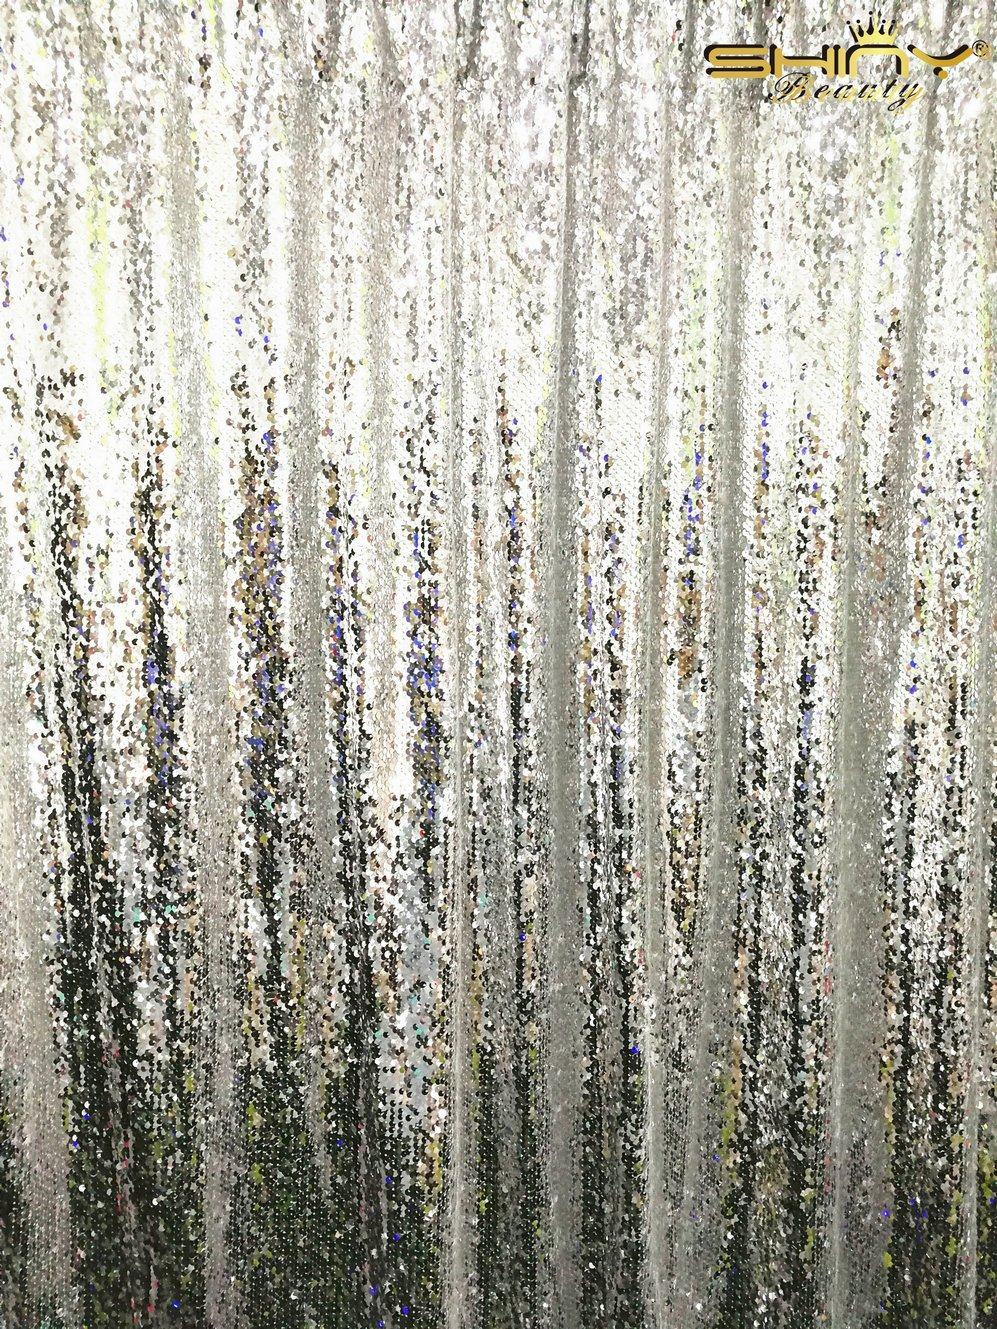 ShinyBeauty Mermaid-Sequin Curtain Backdrop-Silver-10FTx8FT,Sparkyly Sequin Fabric Curtain Backdrop,Perfect for Party/Wedding/Event/Prom/Birthday by ShinyBeauty